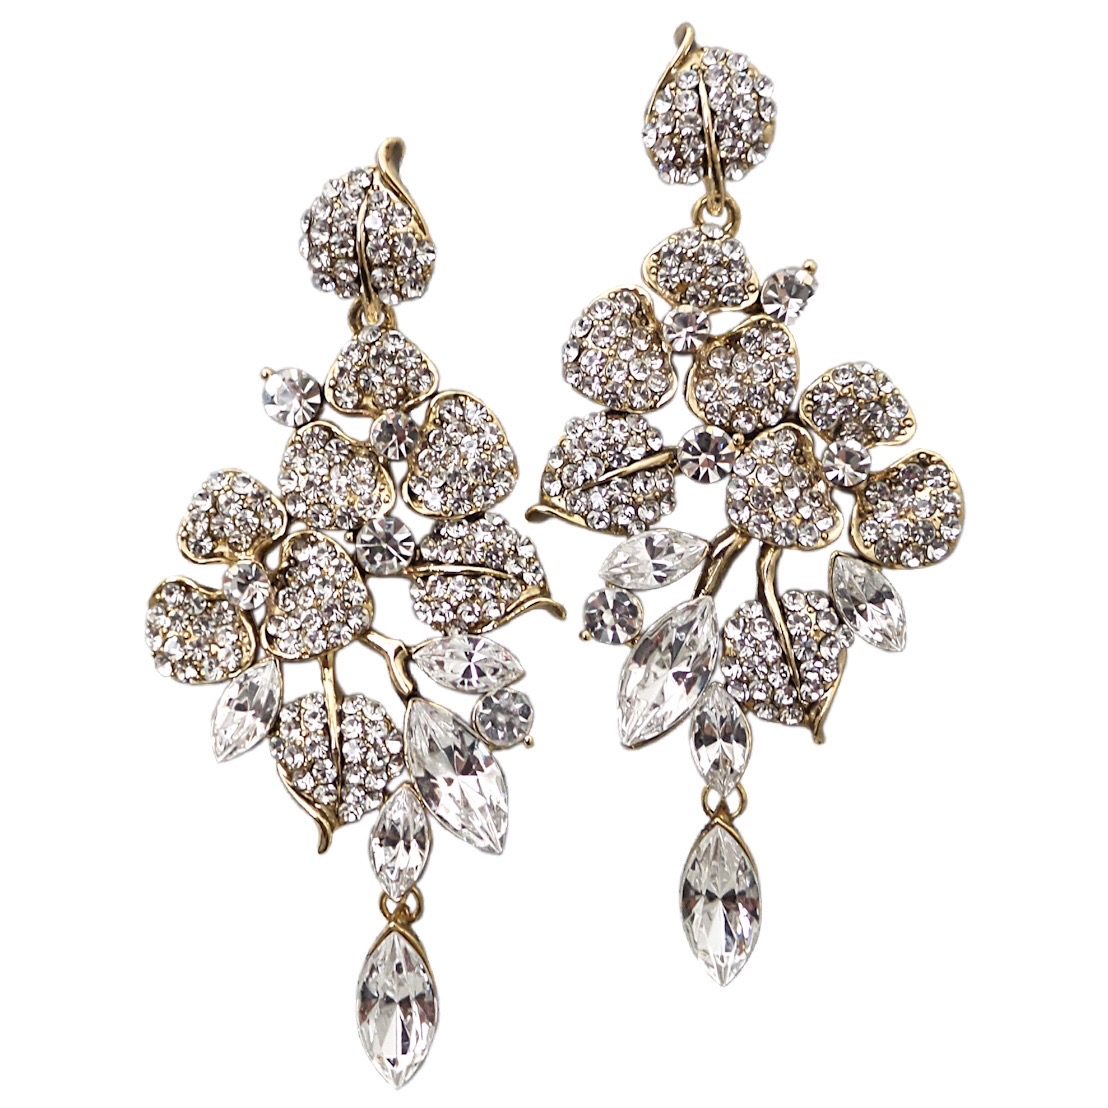 Earrings - DESERT ROSE2/CG